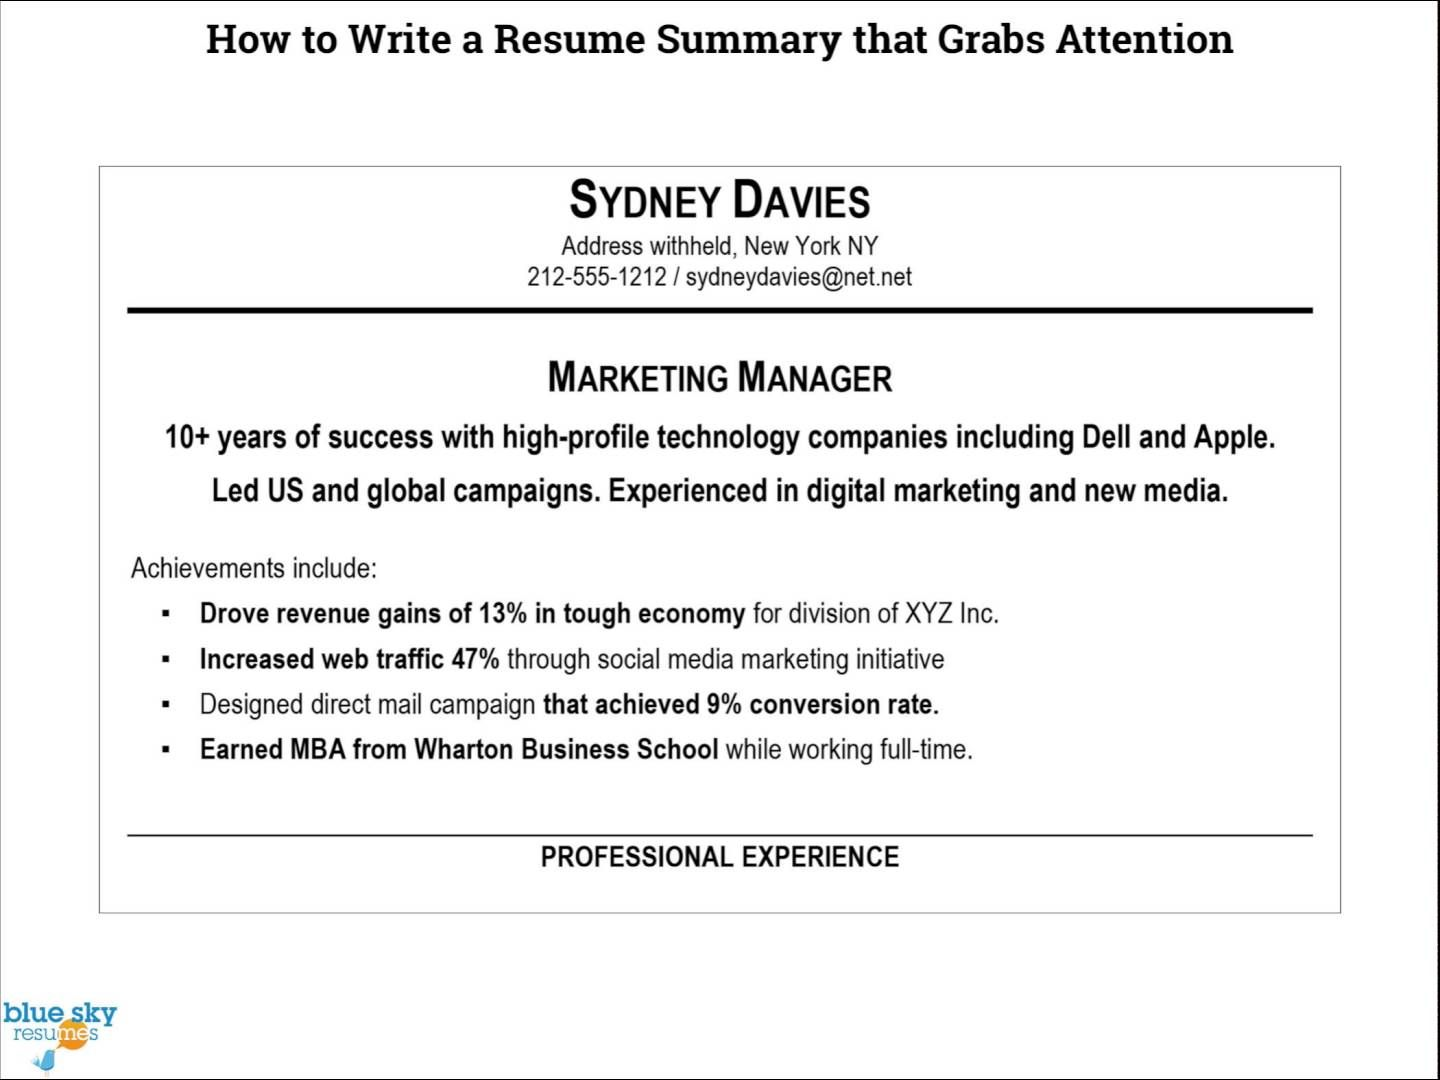 How to Write a Resume Summary Resume summary, Resume